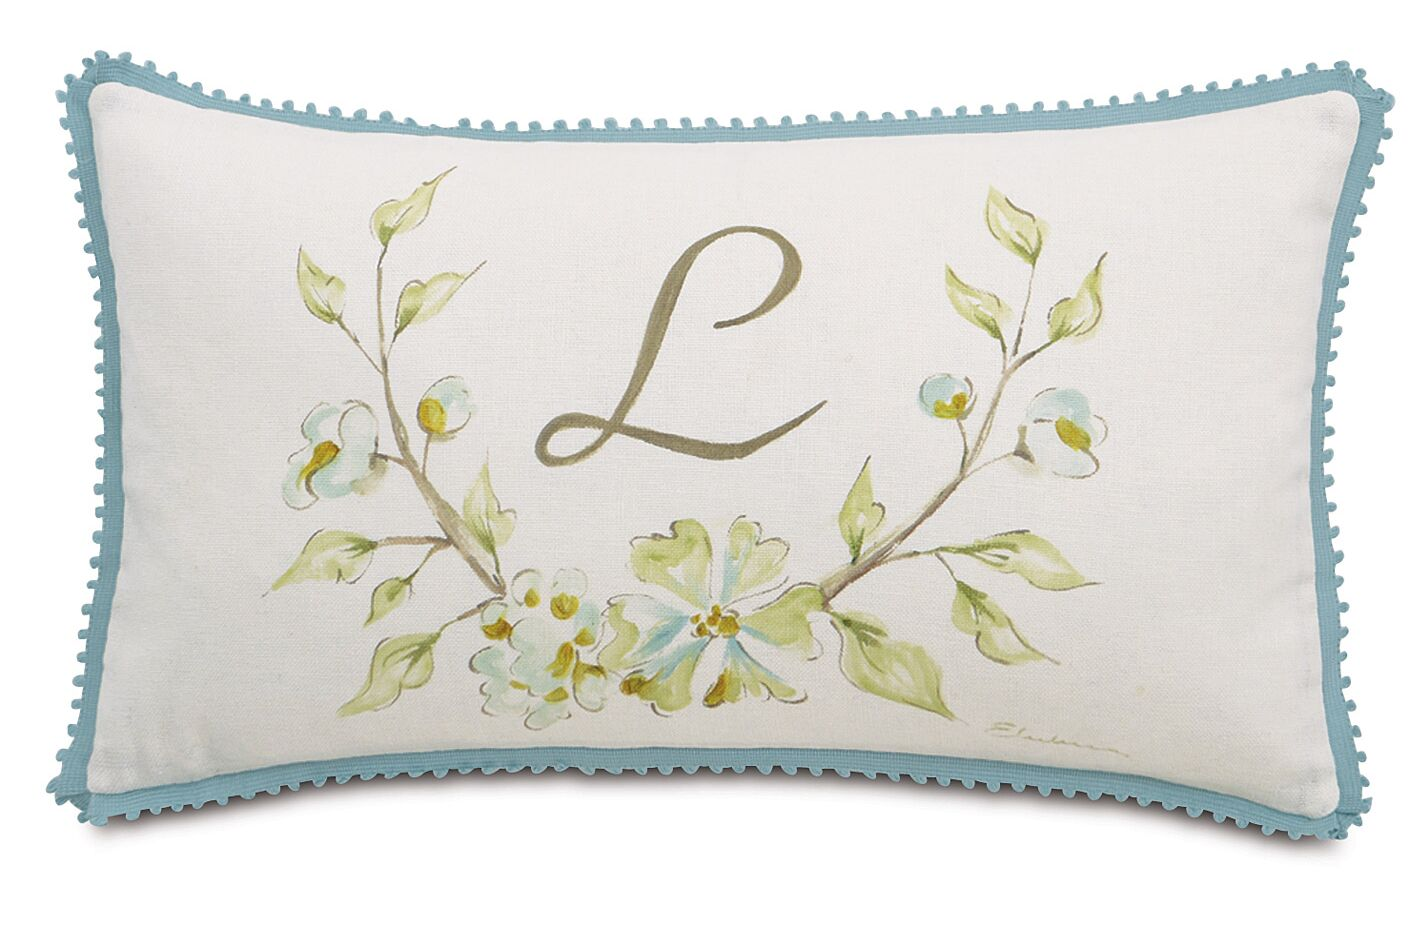 Magnolia Hand-Painted Monogram Fabric Throw Pillow